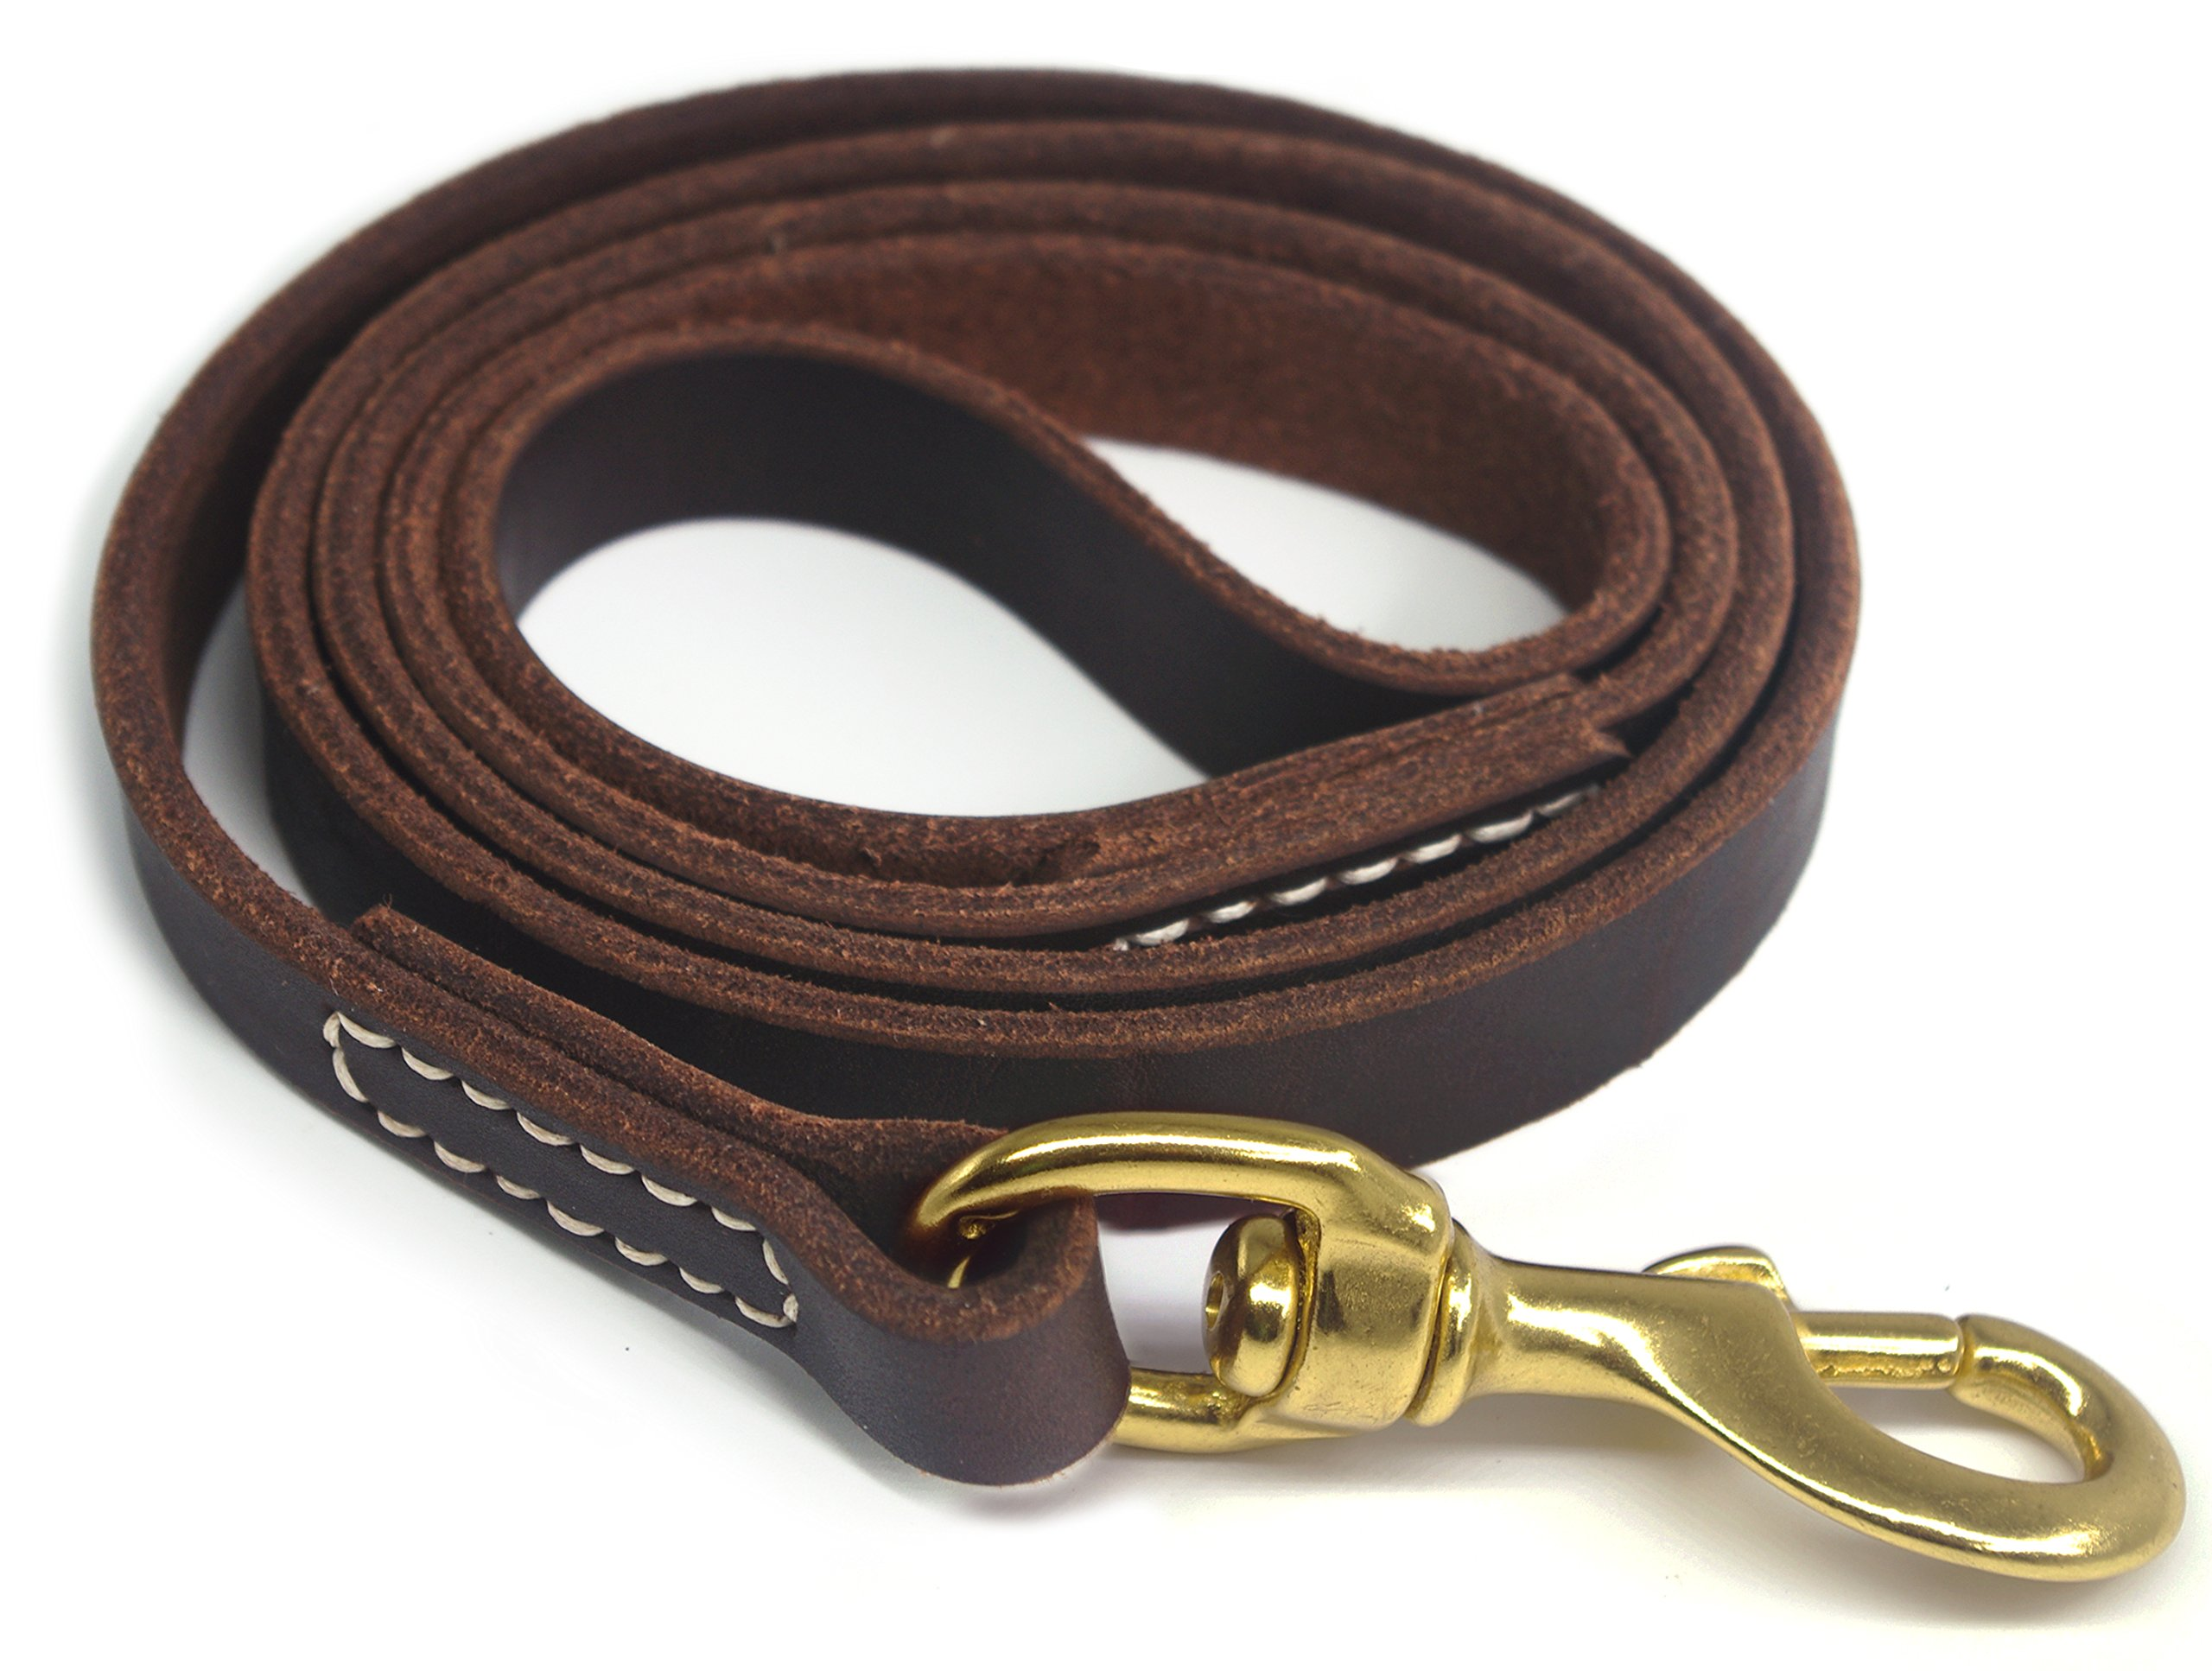 YOGADOG Genuine Leather Dog Training Leash, Brown. Large Metal Clasp for Medium and Large Dogs. Lifetime Gurantee - 6 feet